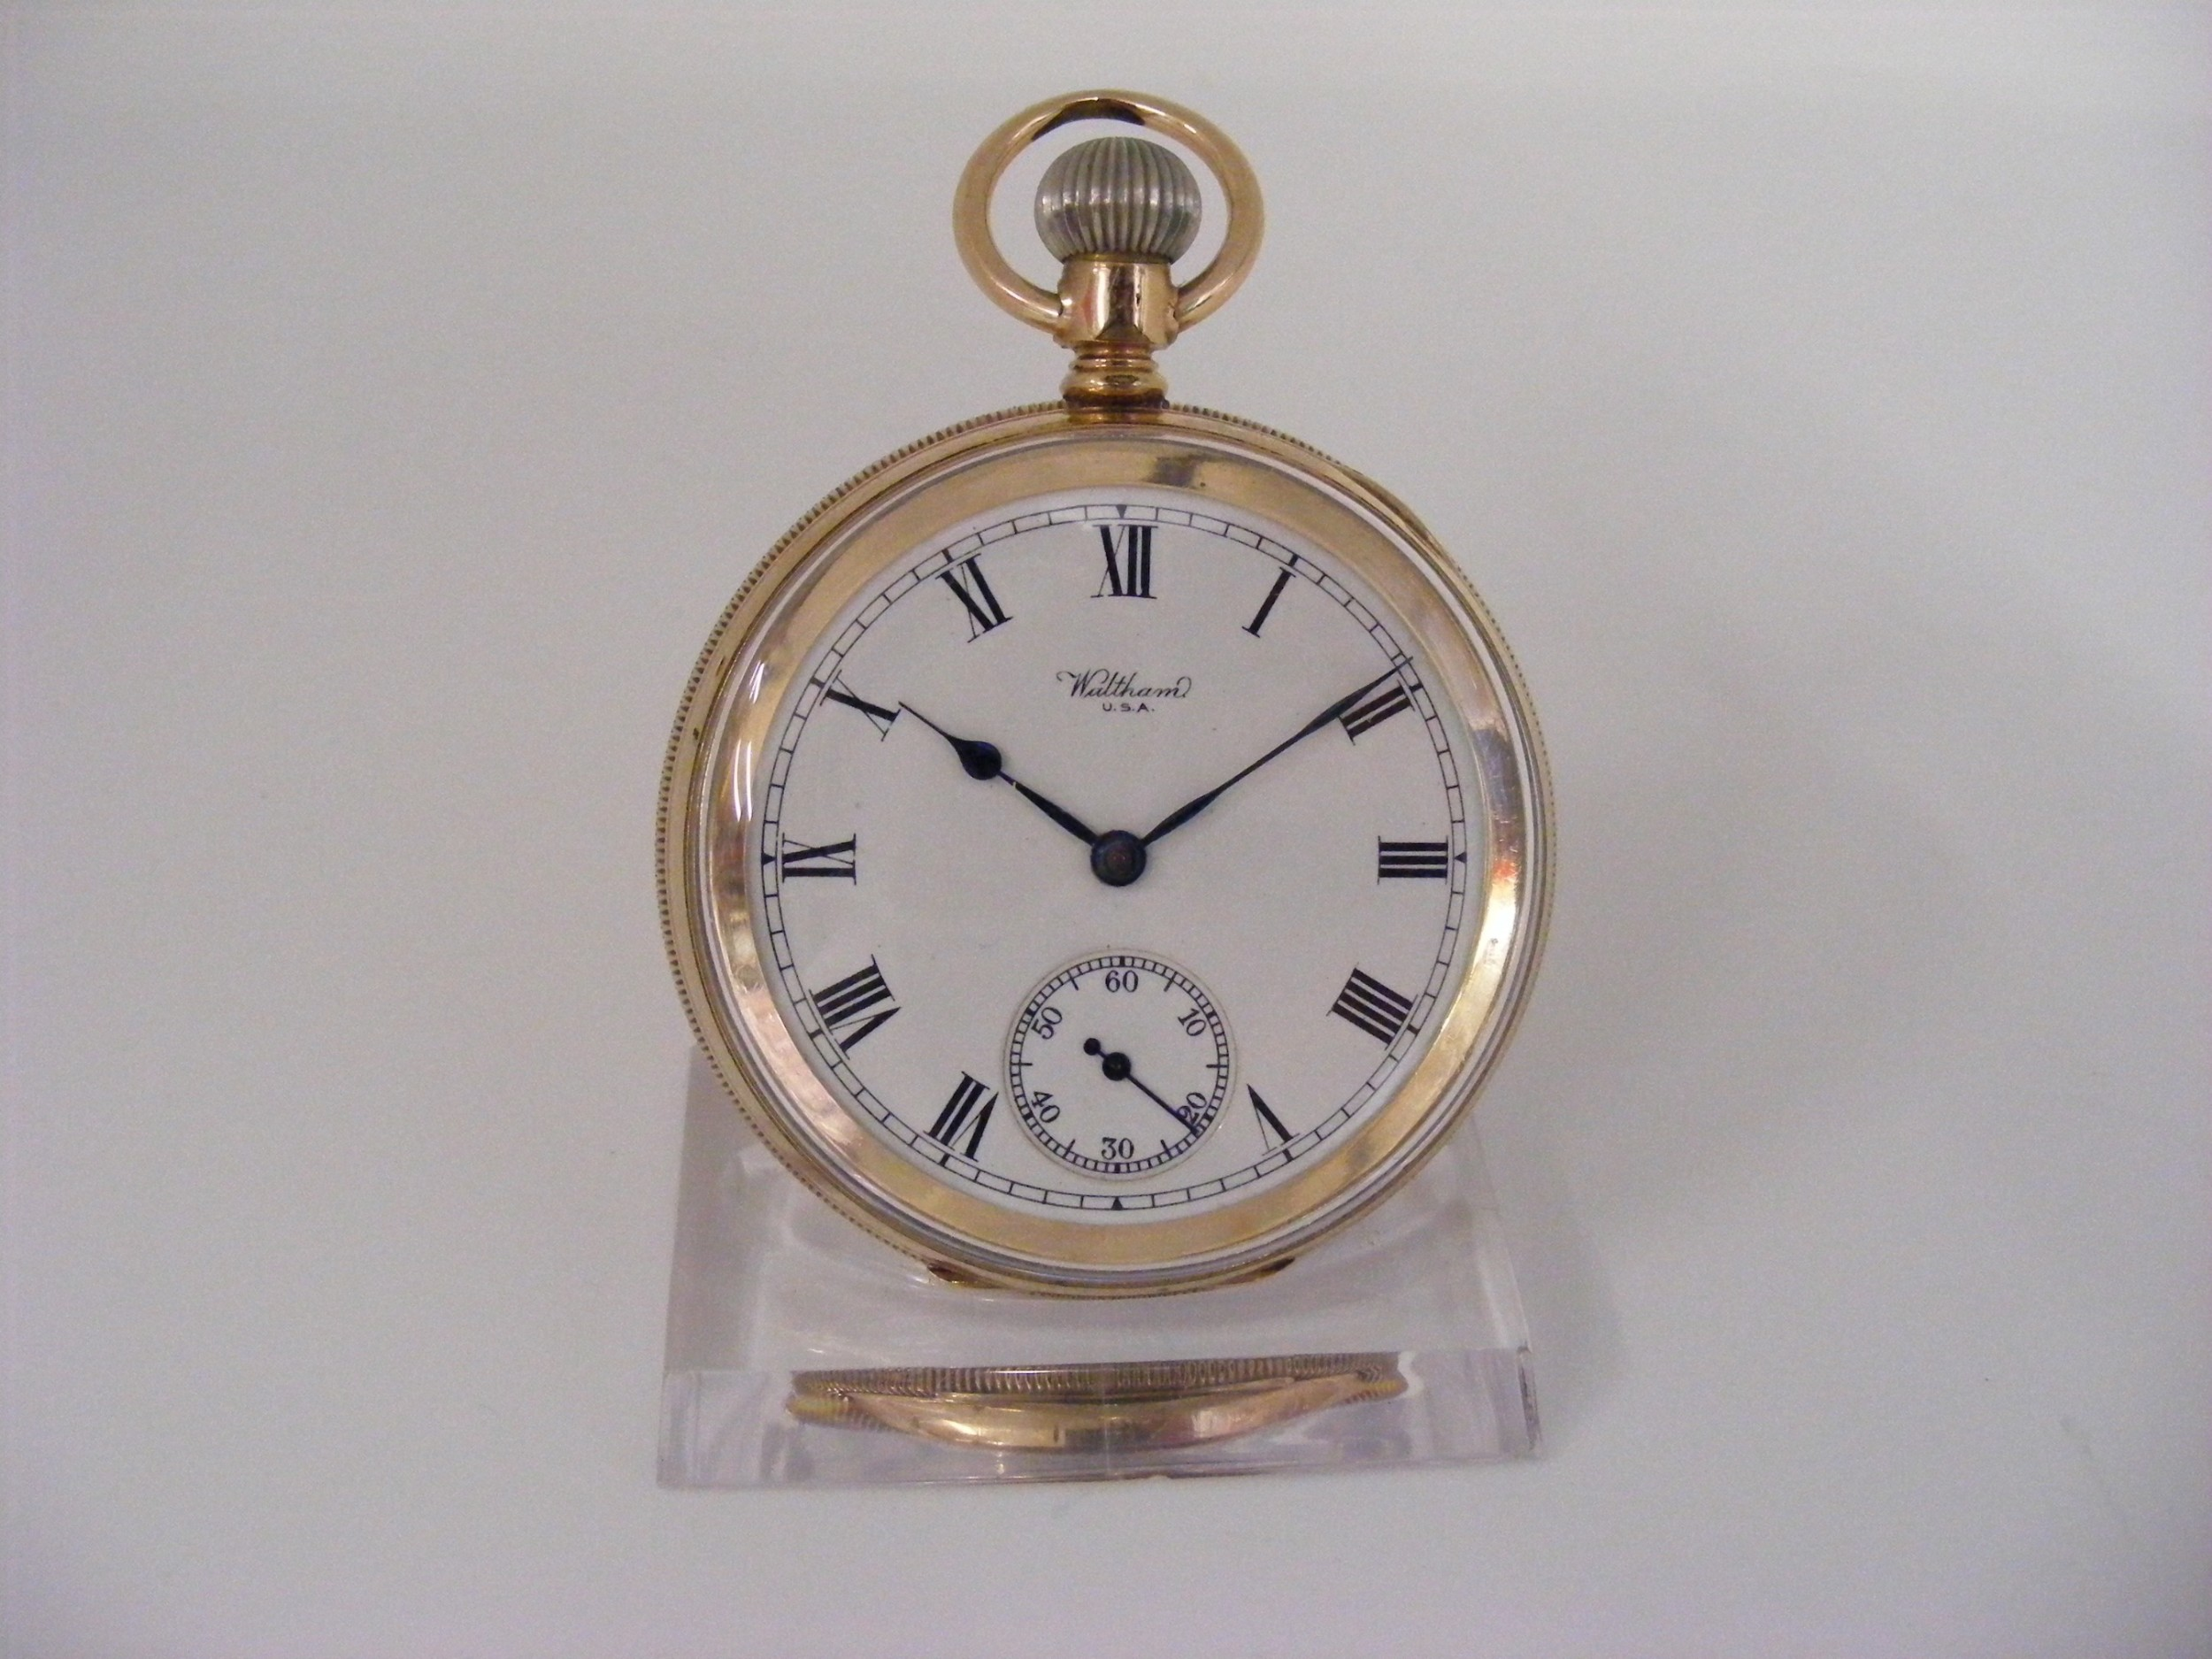 waltham gold plated open face pocket watch serviced warranted